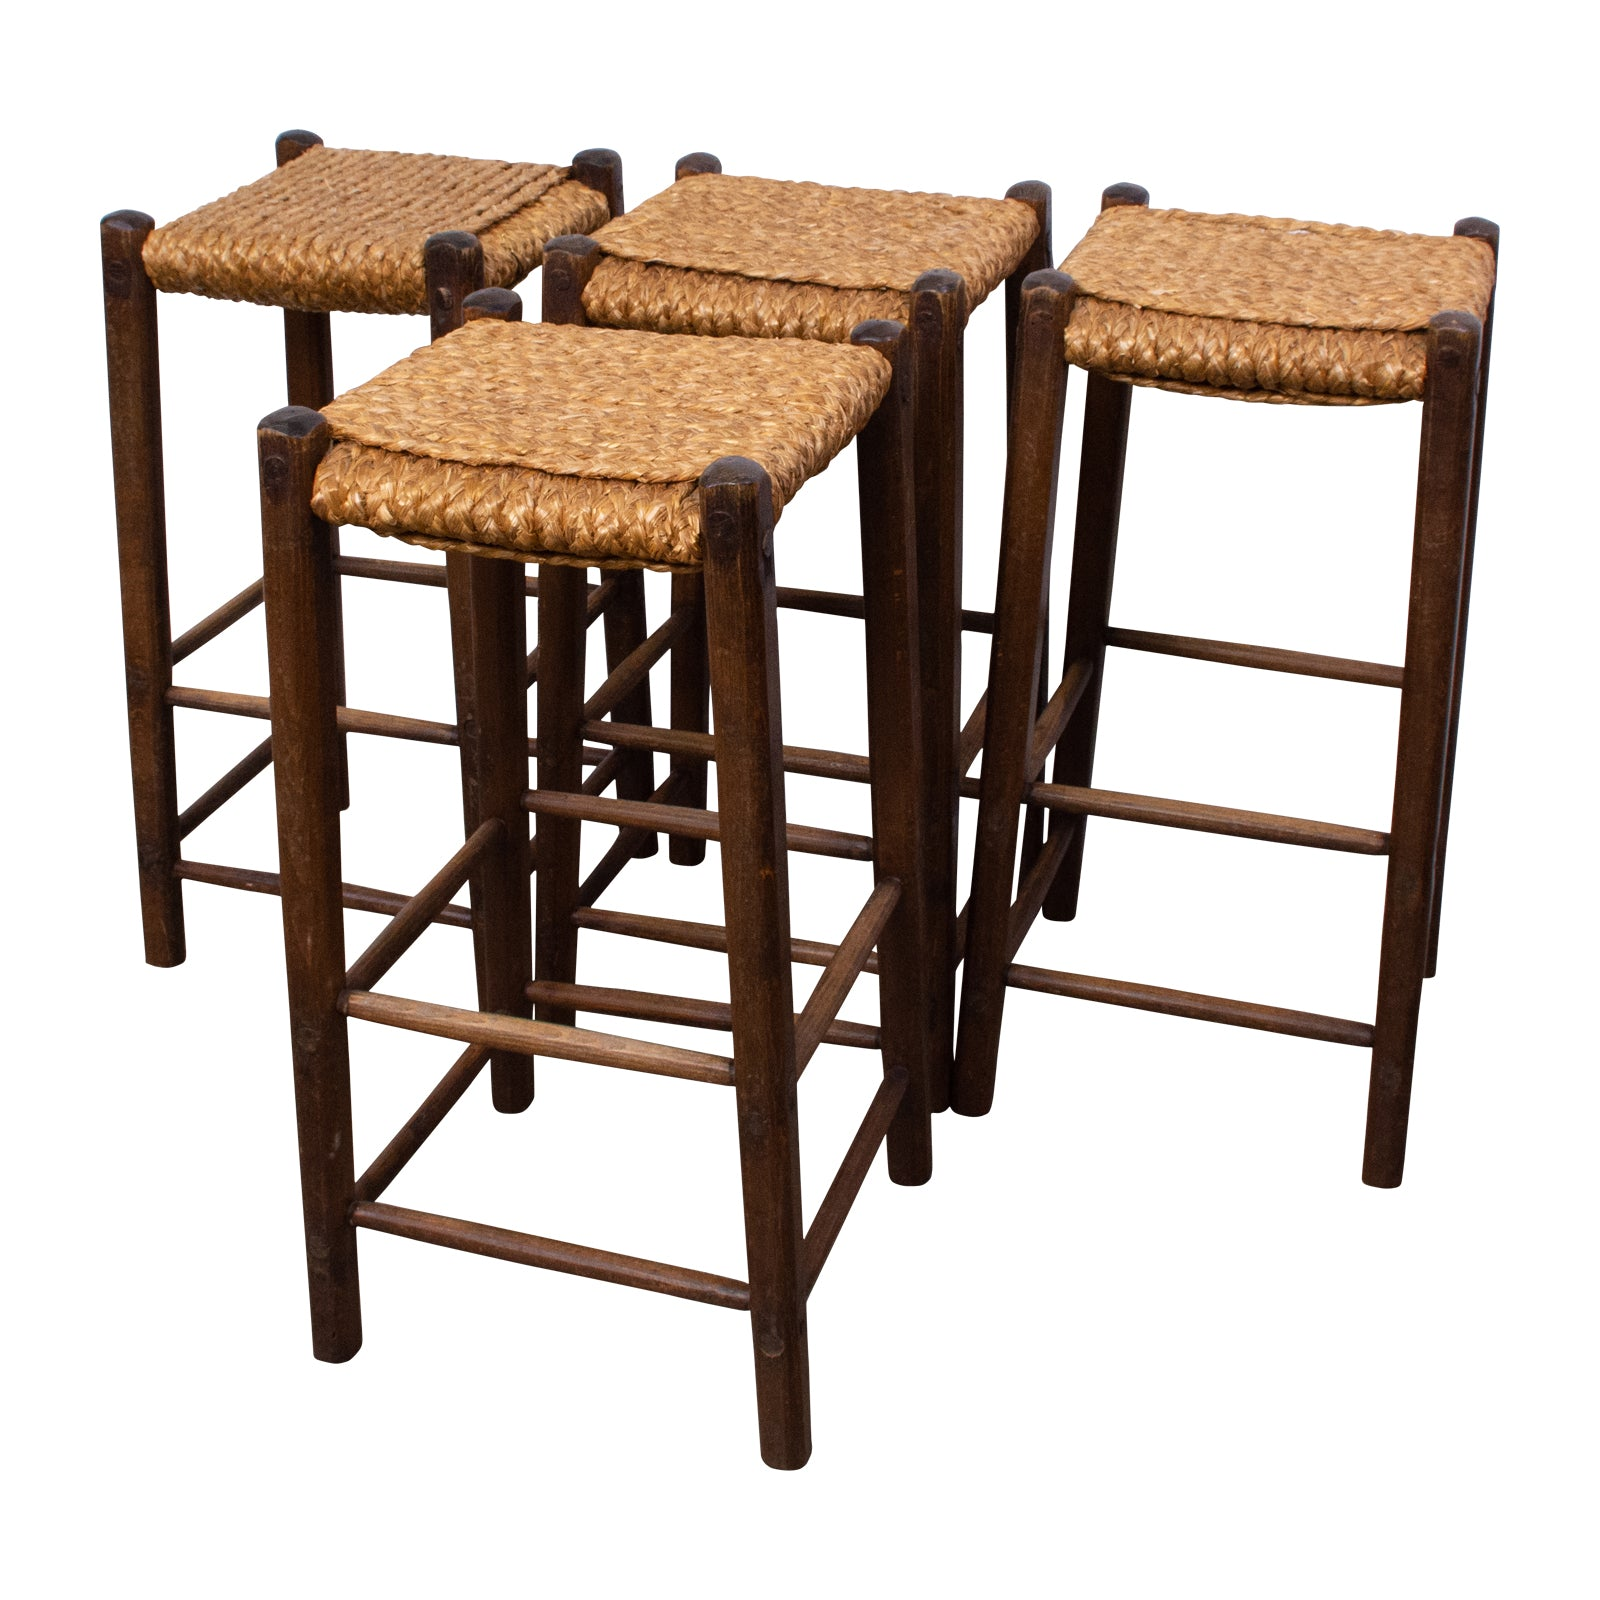 Super Set Of Four Audoux Minet Style Rope Bar Stools The Vault Gmtry Best Dining Table And Chair Ideas Images Gmtryco